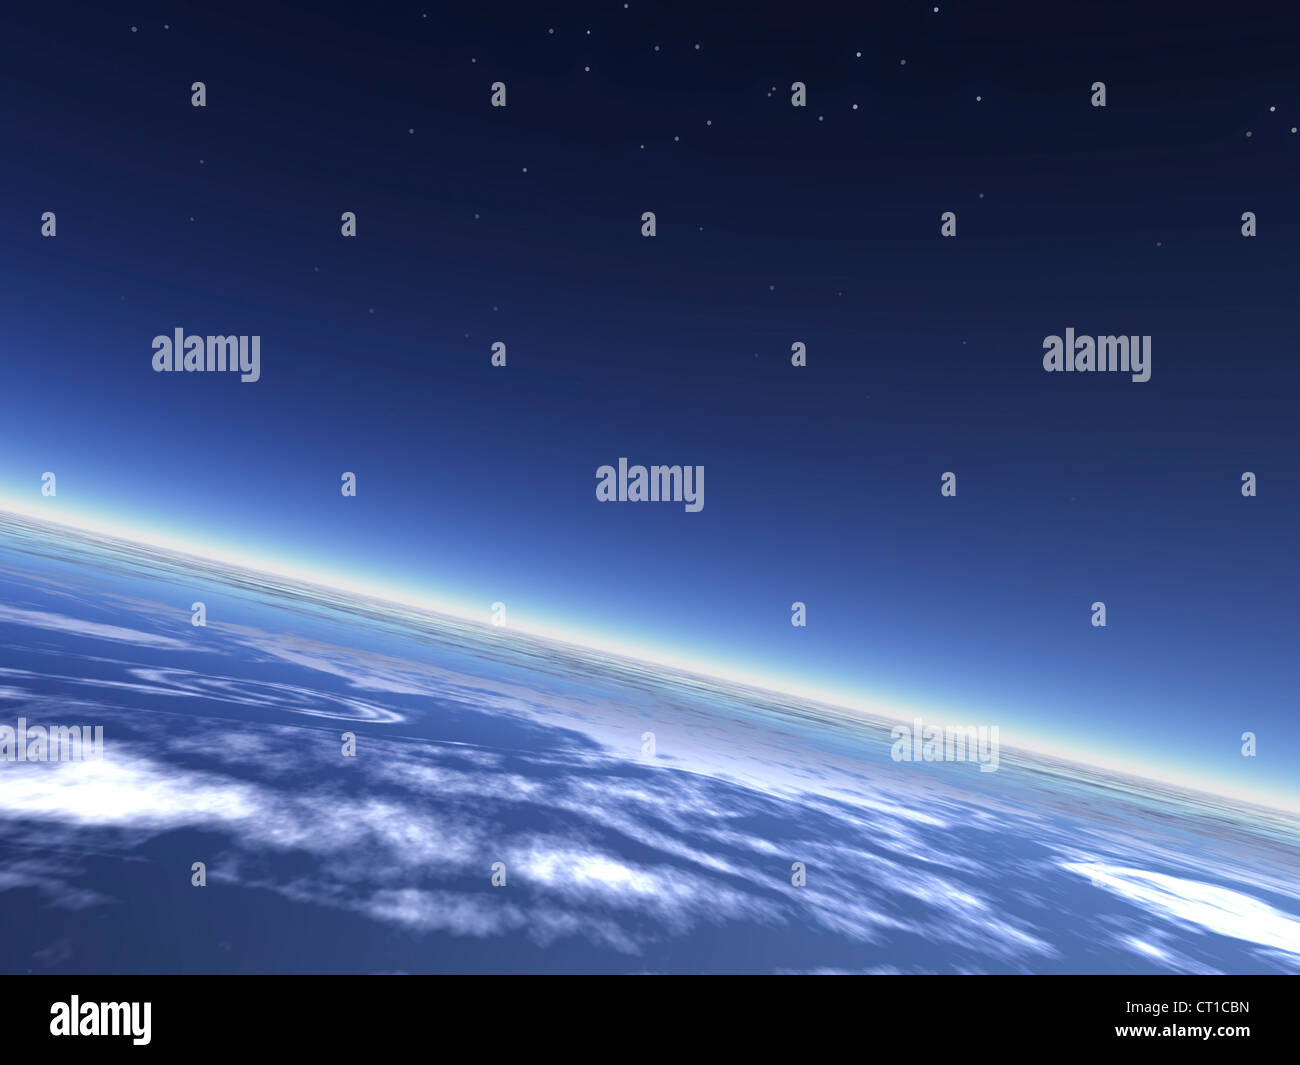 blue planet earth atmosphere and night sky - Erdatmosphäre mit Nachthimmel aus dem All gesehen - Stock Image